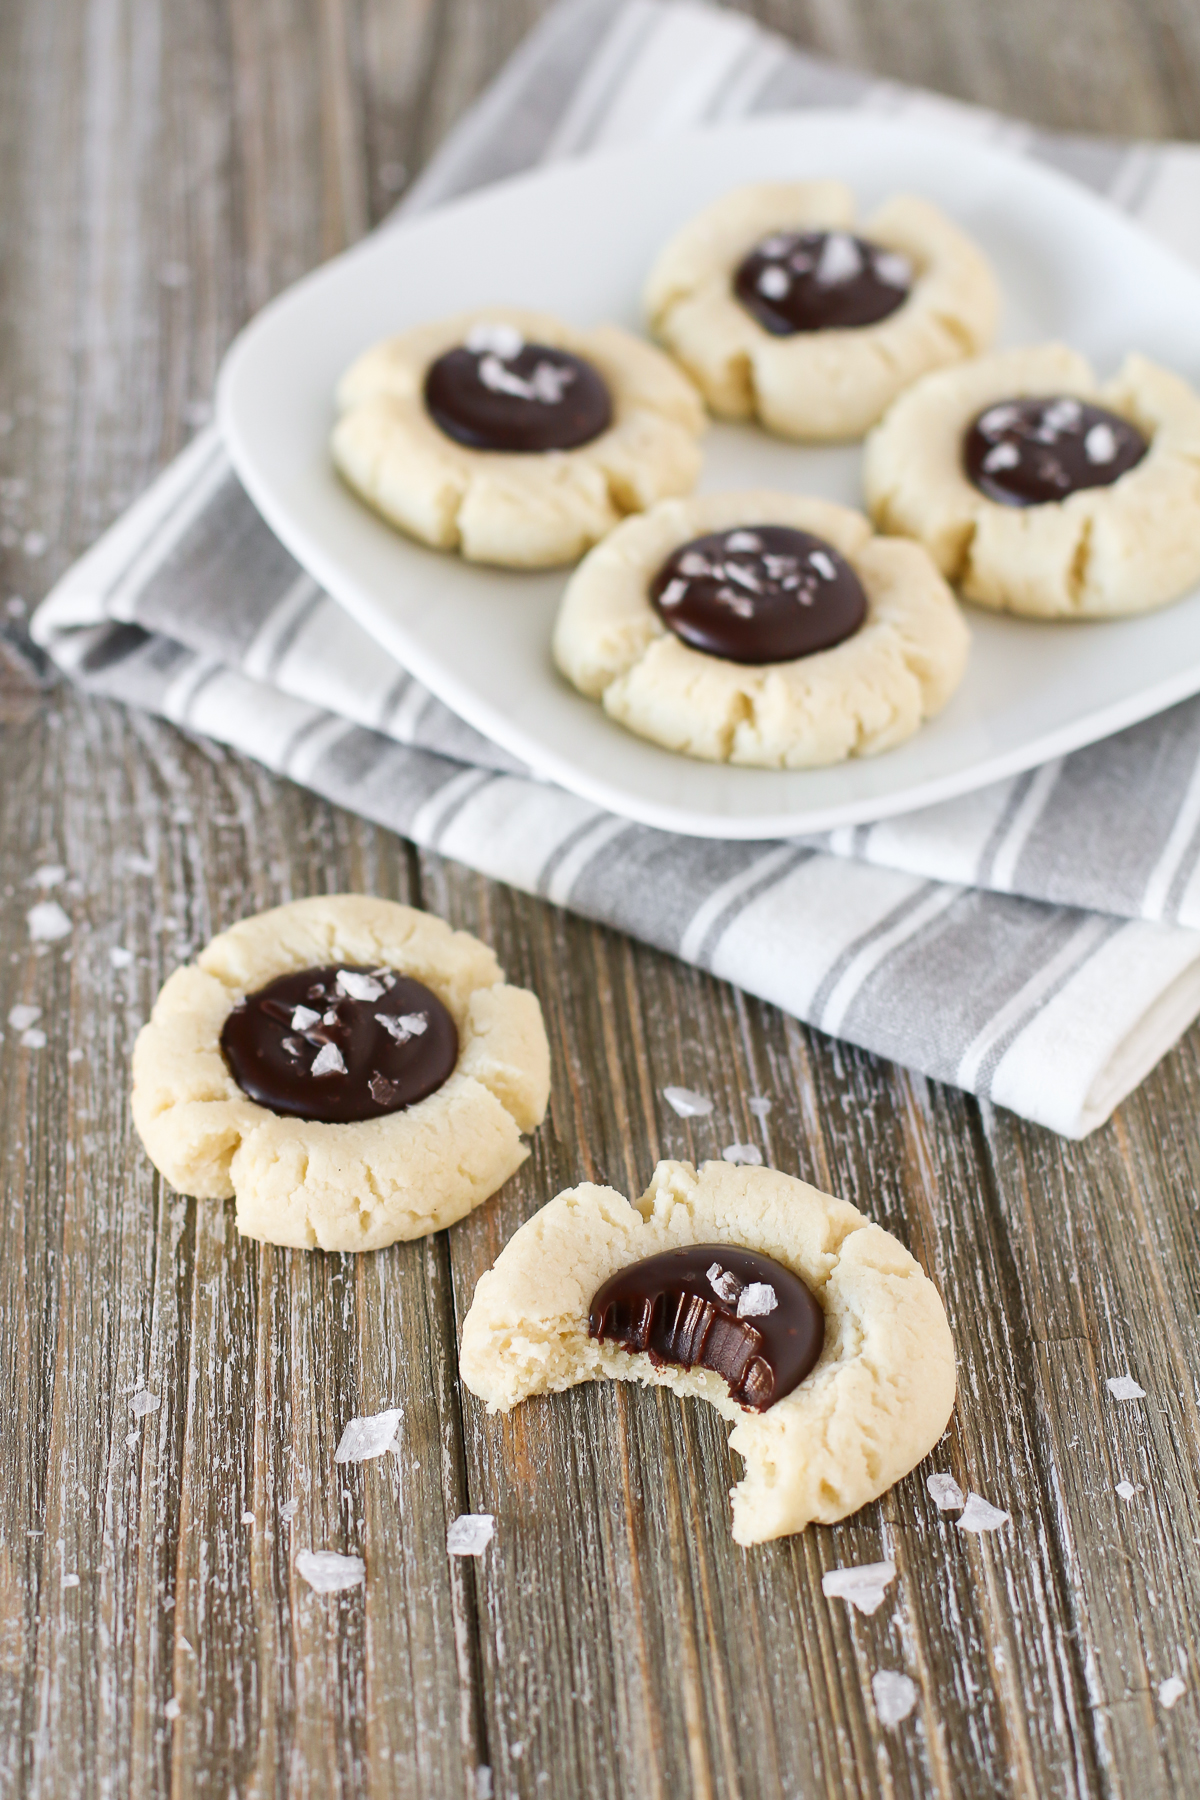 s. Soft almond thumbprint cookies, filled with a decadent chocolate ganache and topped with sea salt flakes.